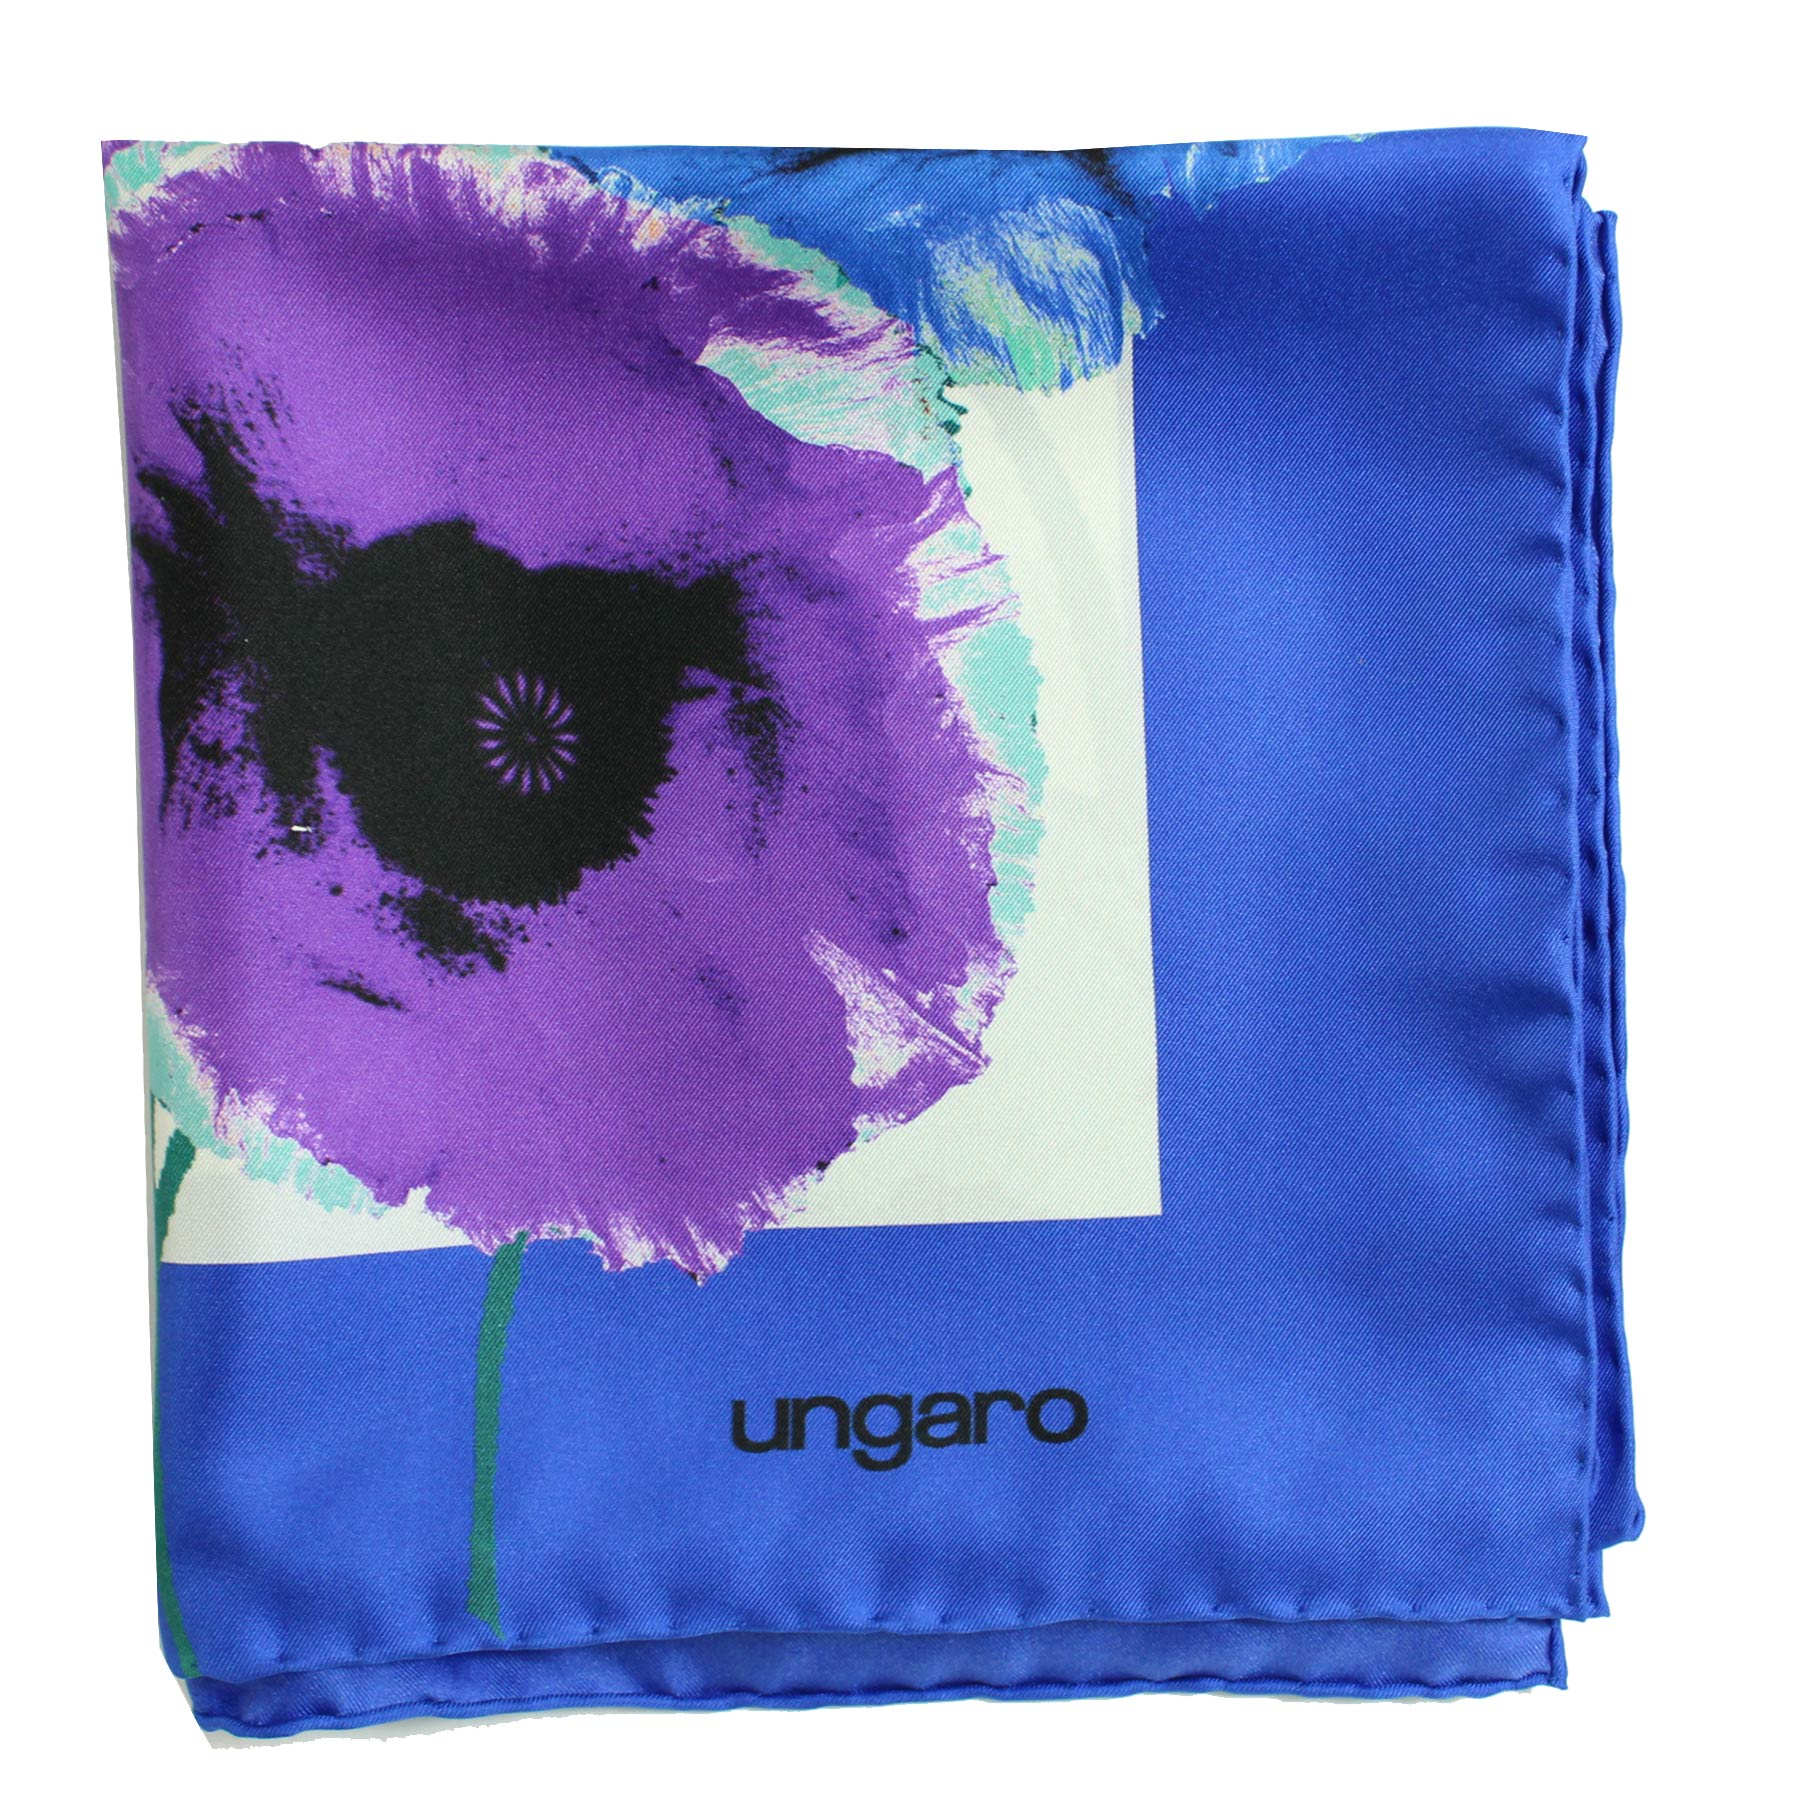 Ungaro Scarf Royal Blue Green Purple Floral